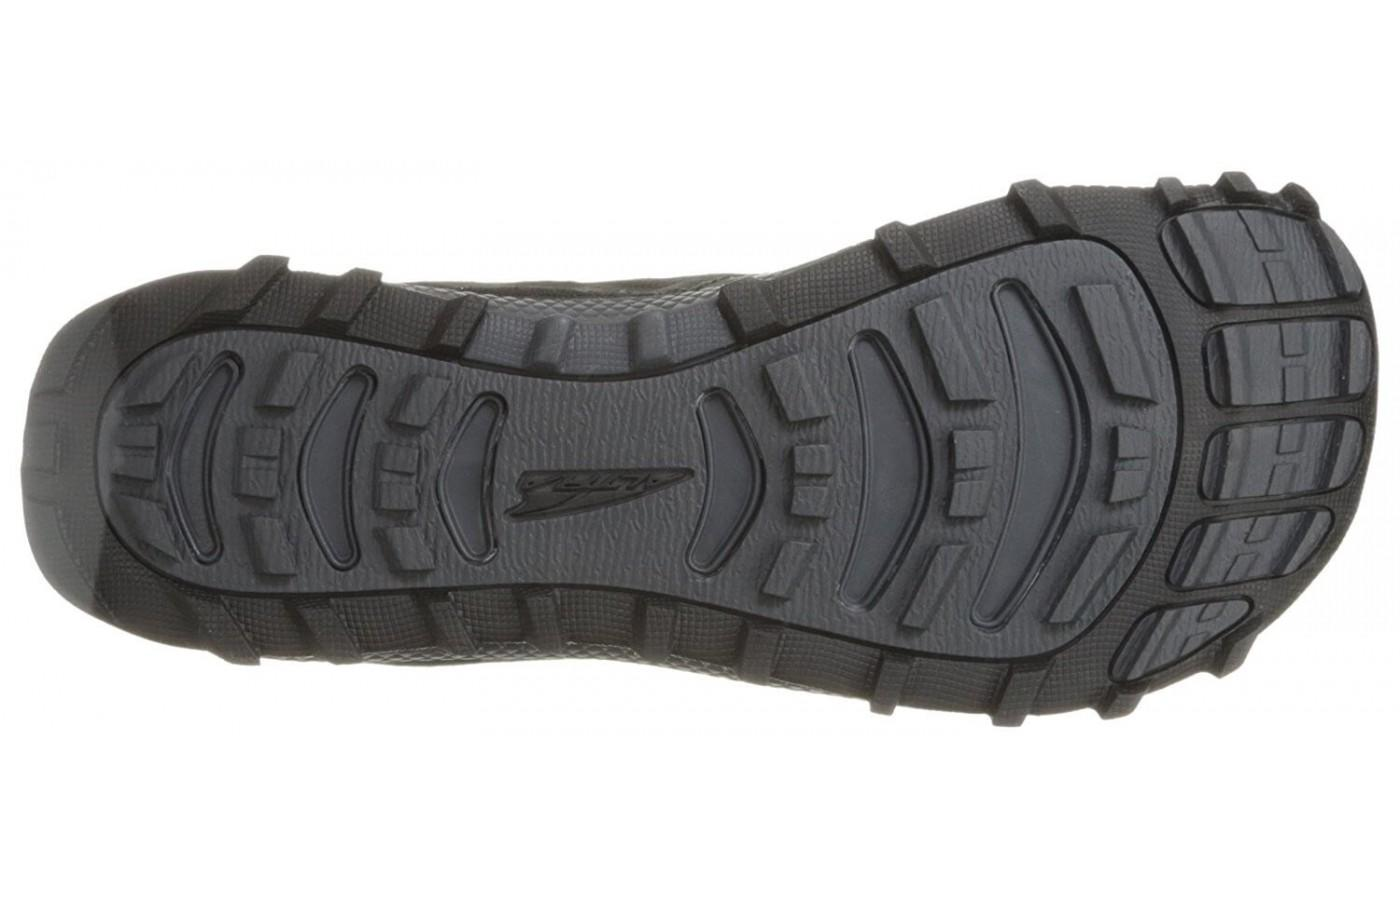 Runners rave about the superior traction of this shoe.